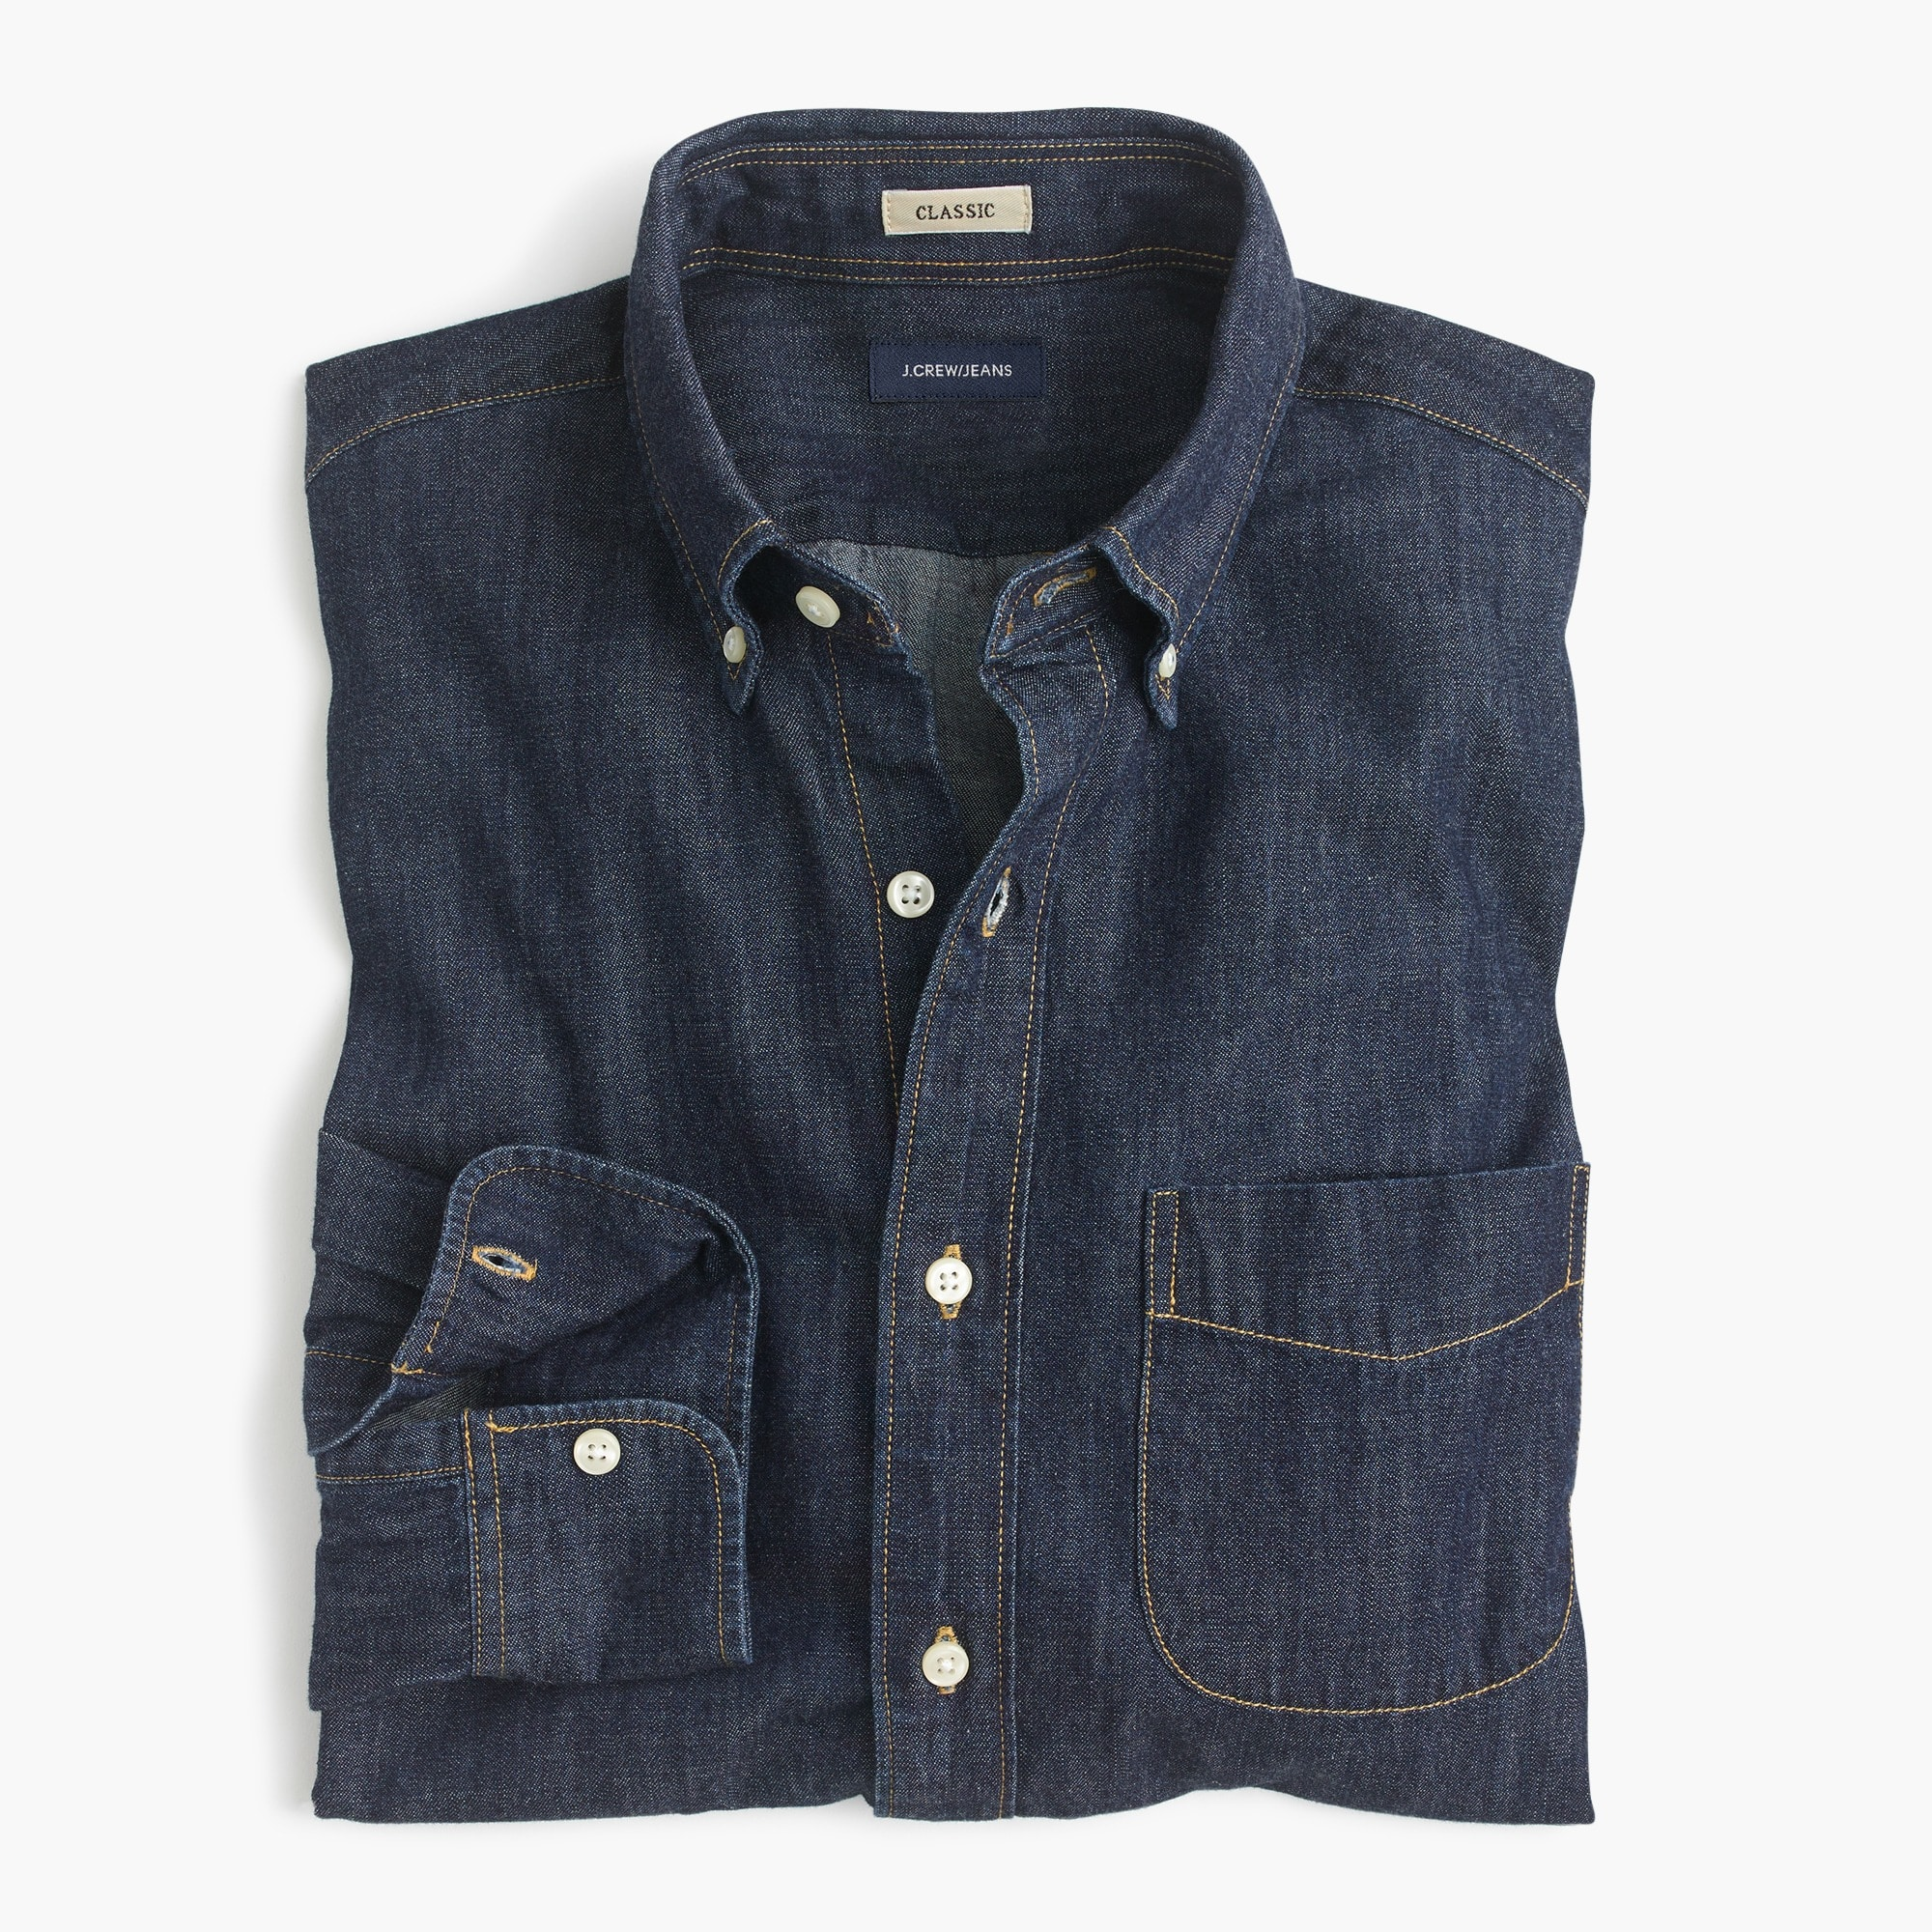 Classic Lightweight denim shirt in dark wash